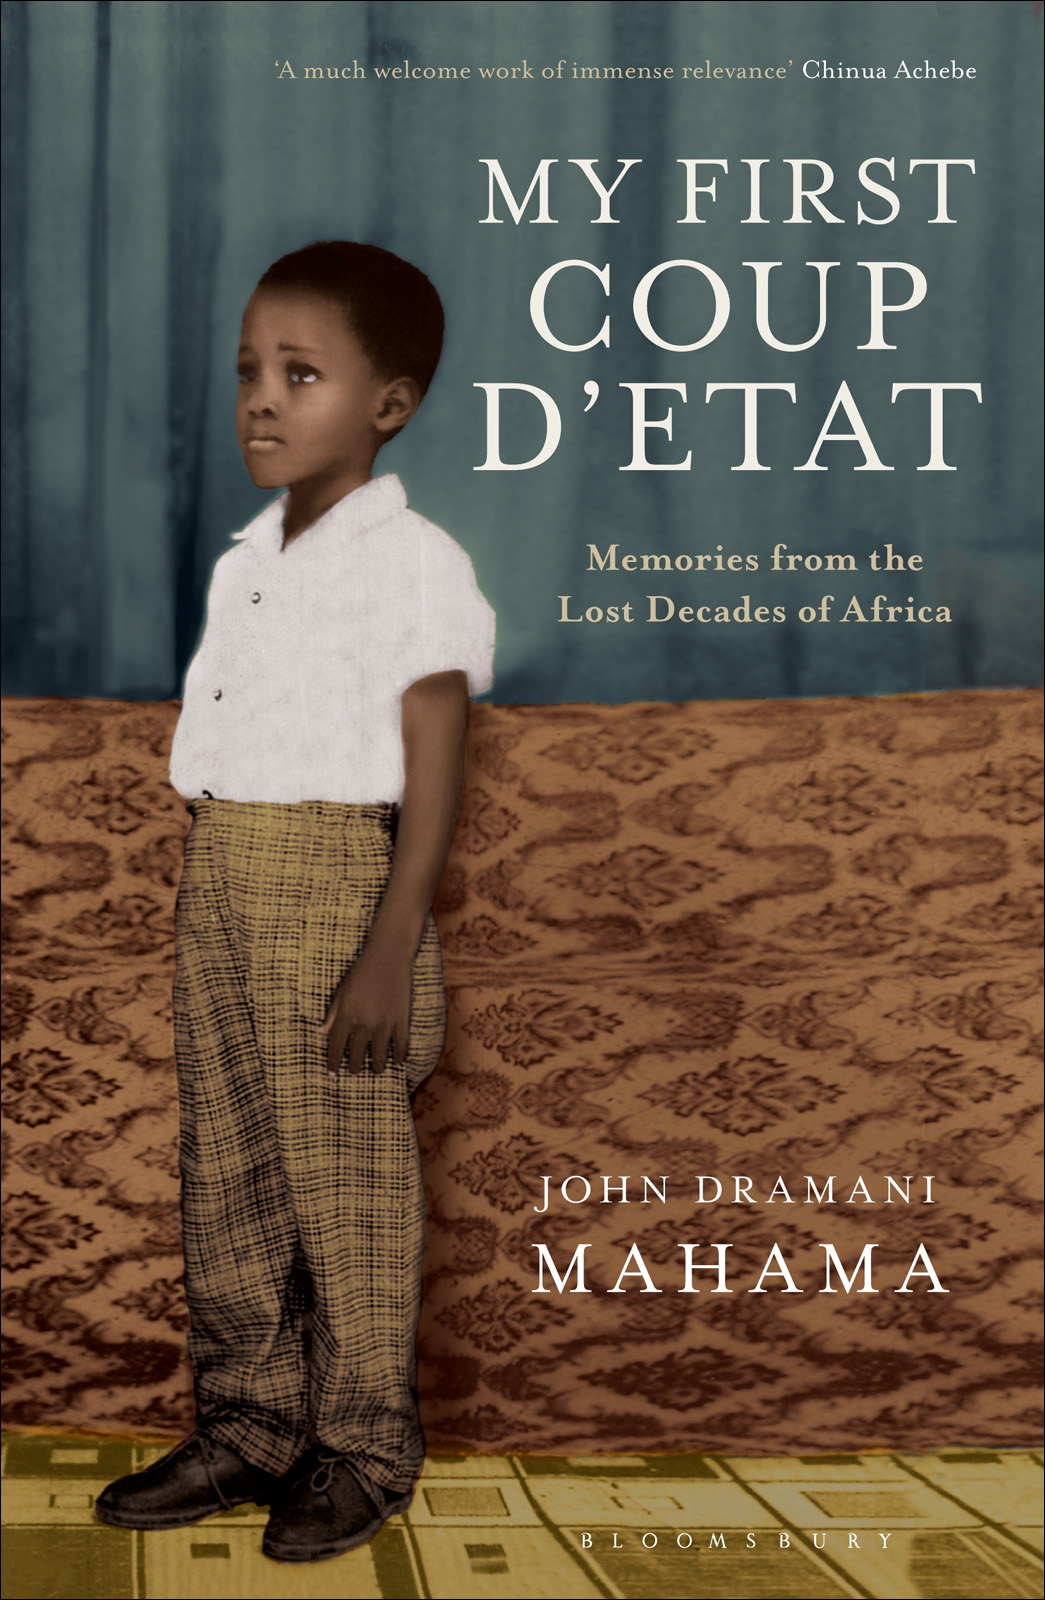 My First Coup d'Etat Memories from the Lost Decades of Africa